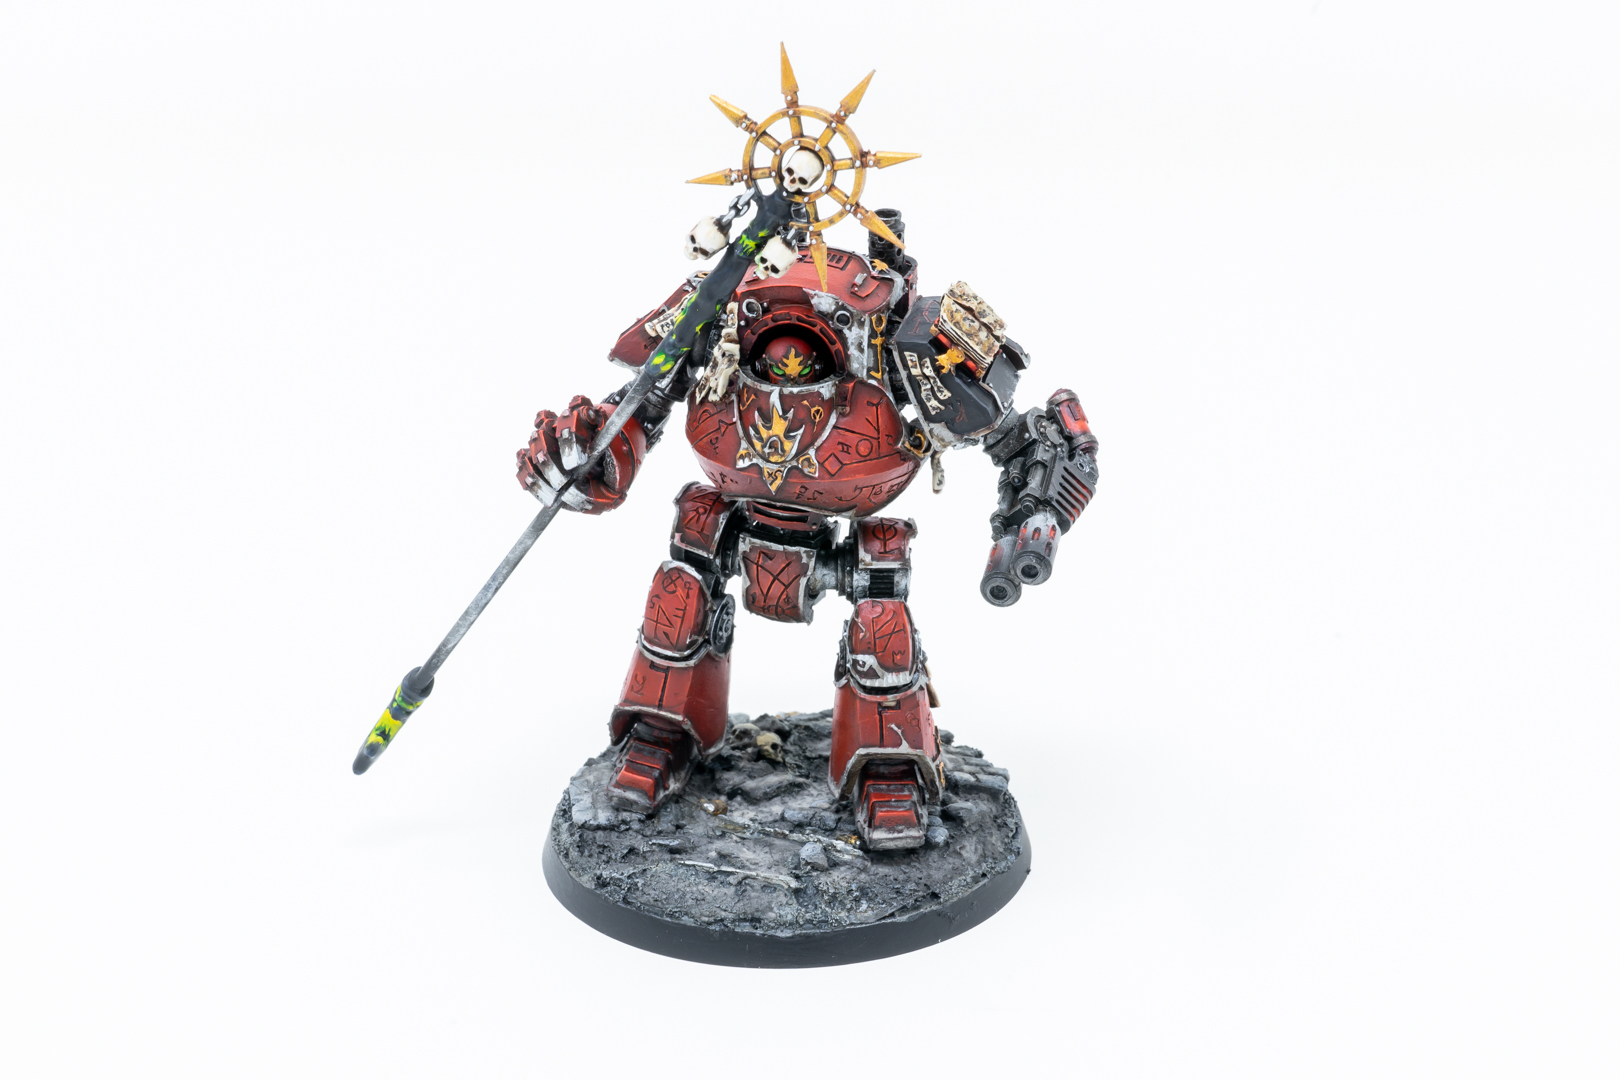 Word Bearers Contemptor Dreadnought